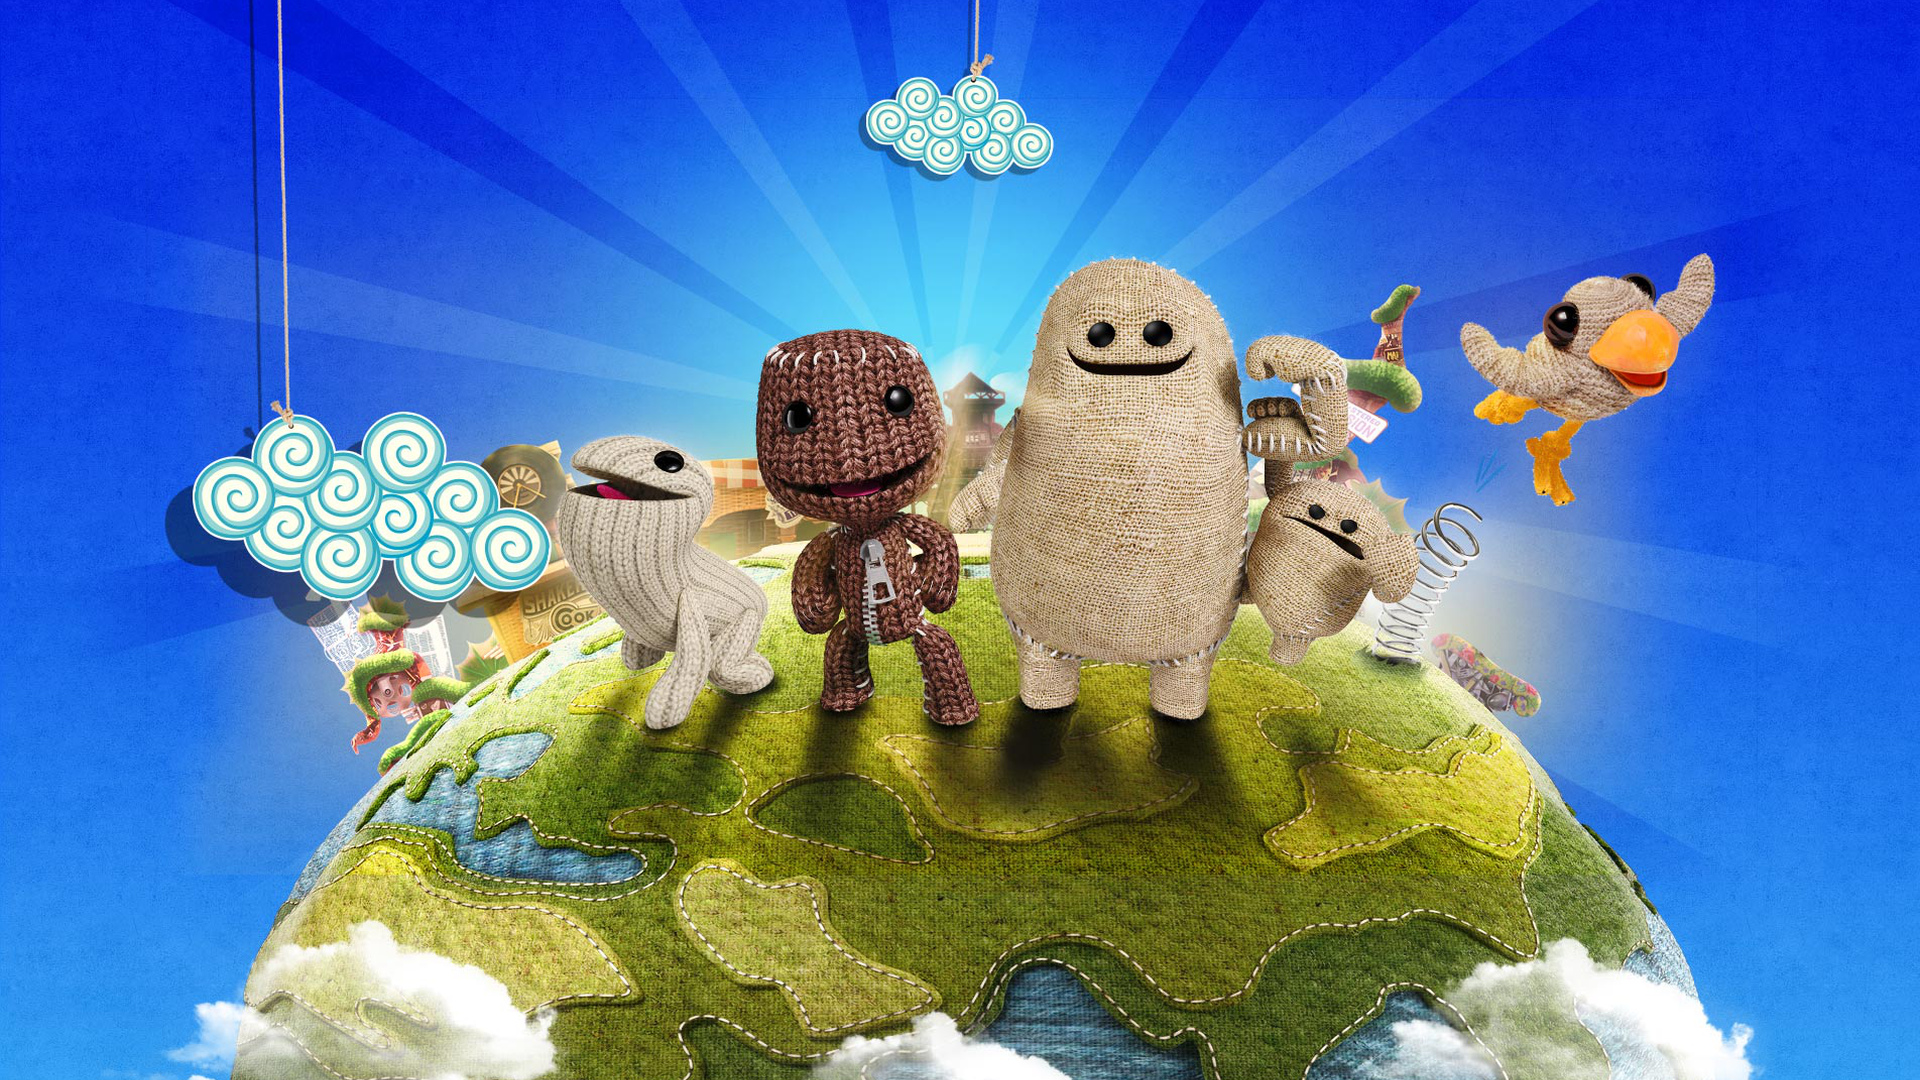 littlebigplanet 3 ps4 wallpapers ps4 home